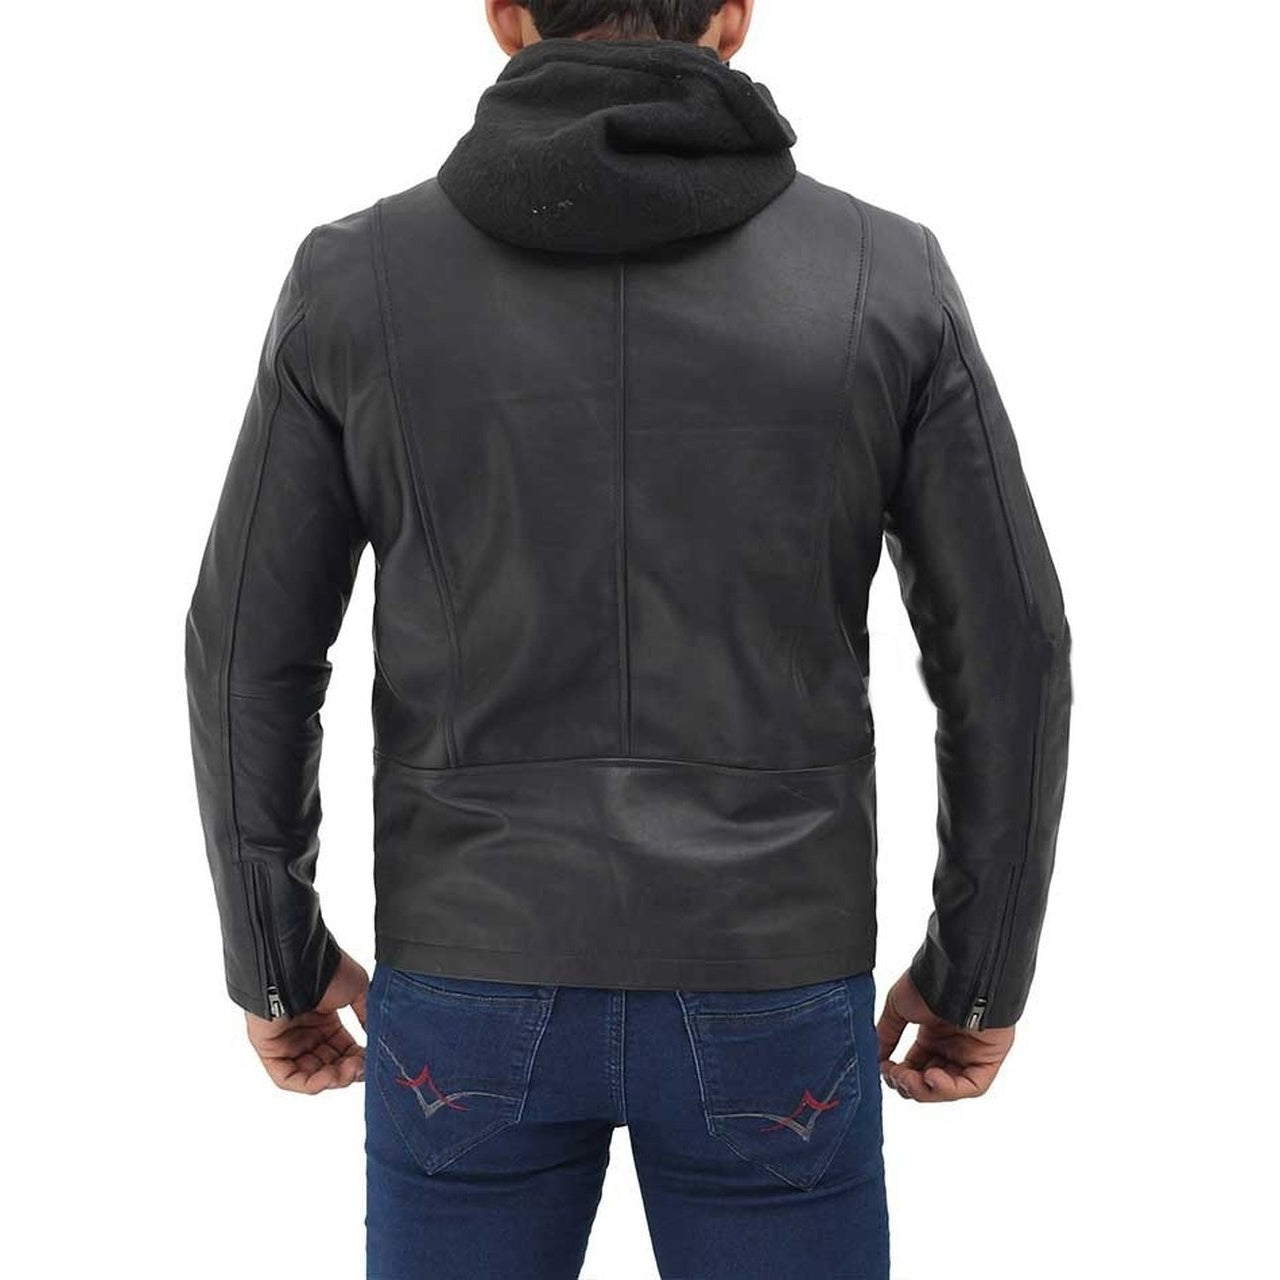 Black Bomber Hooded Leather Jacket - Leather Jacket